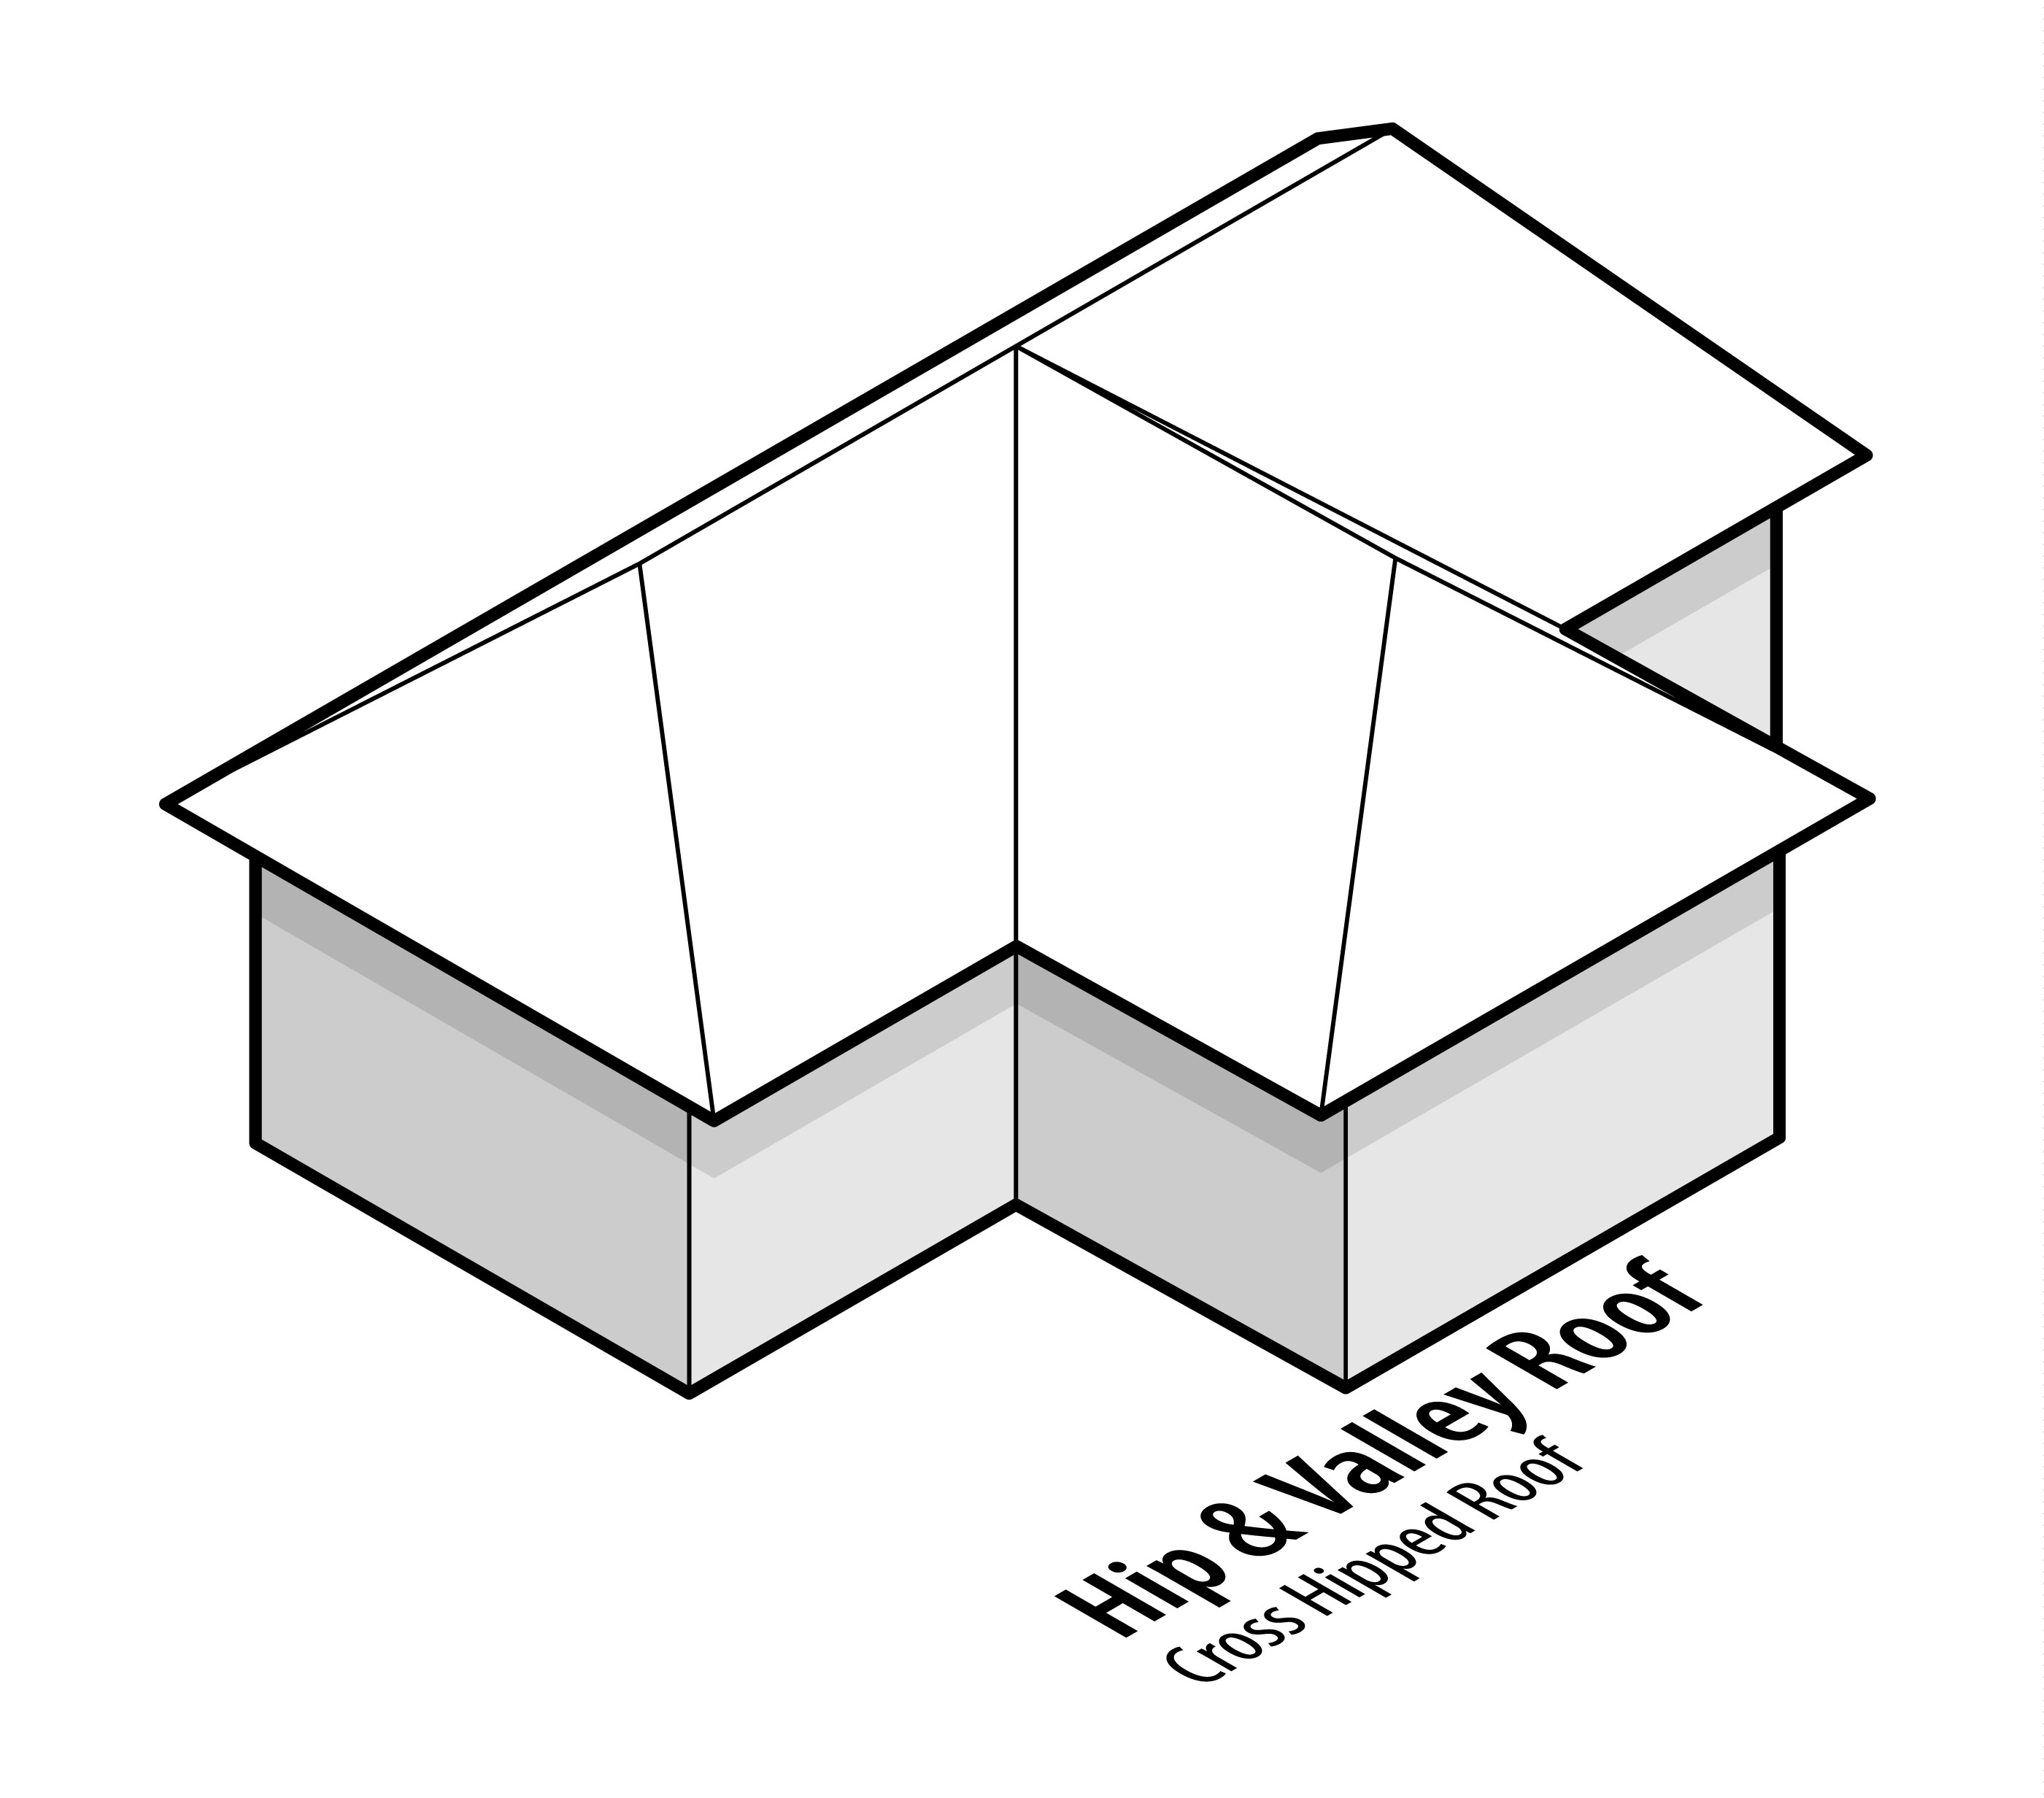 Hip And Valley Roof Design